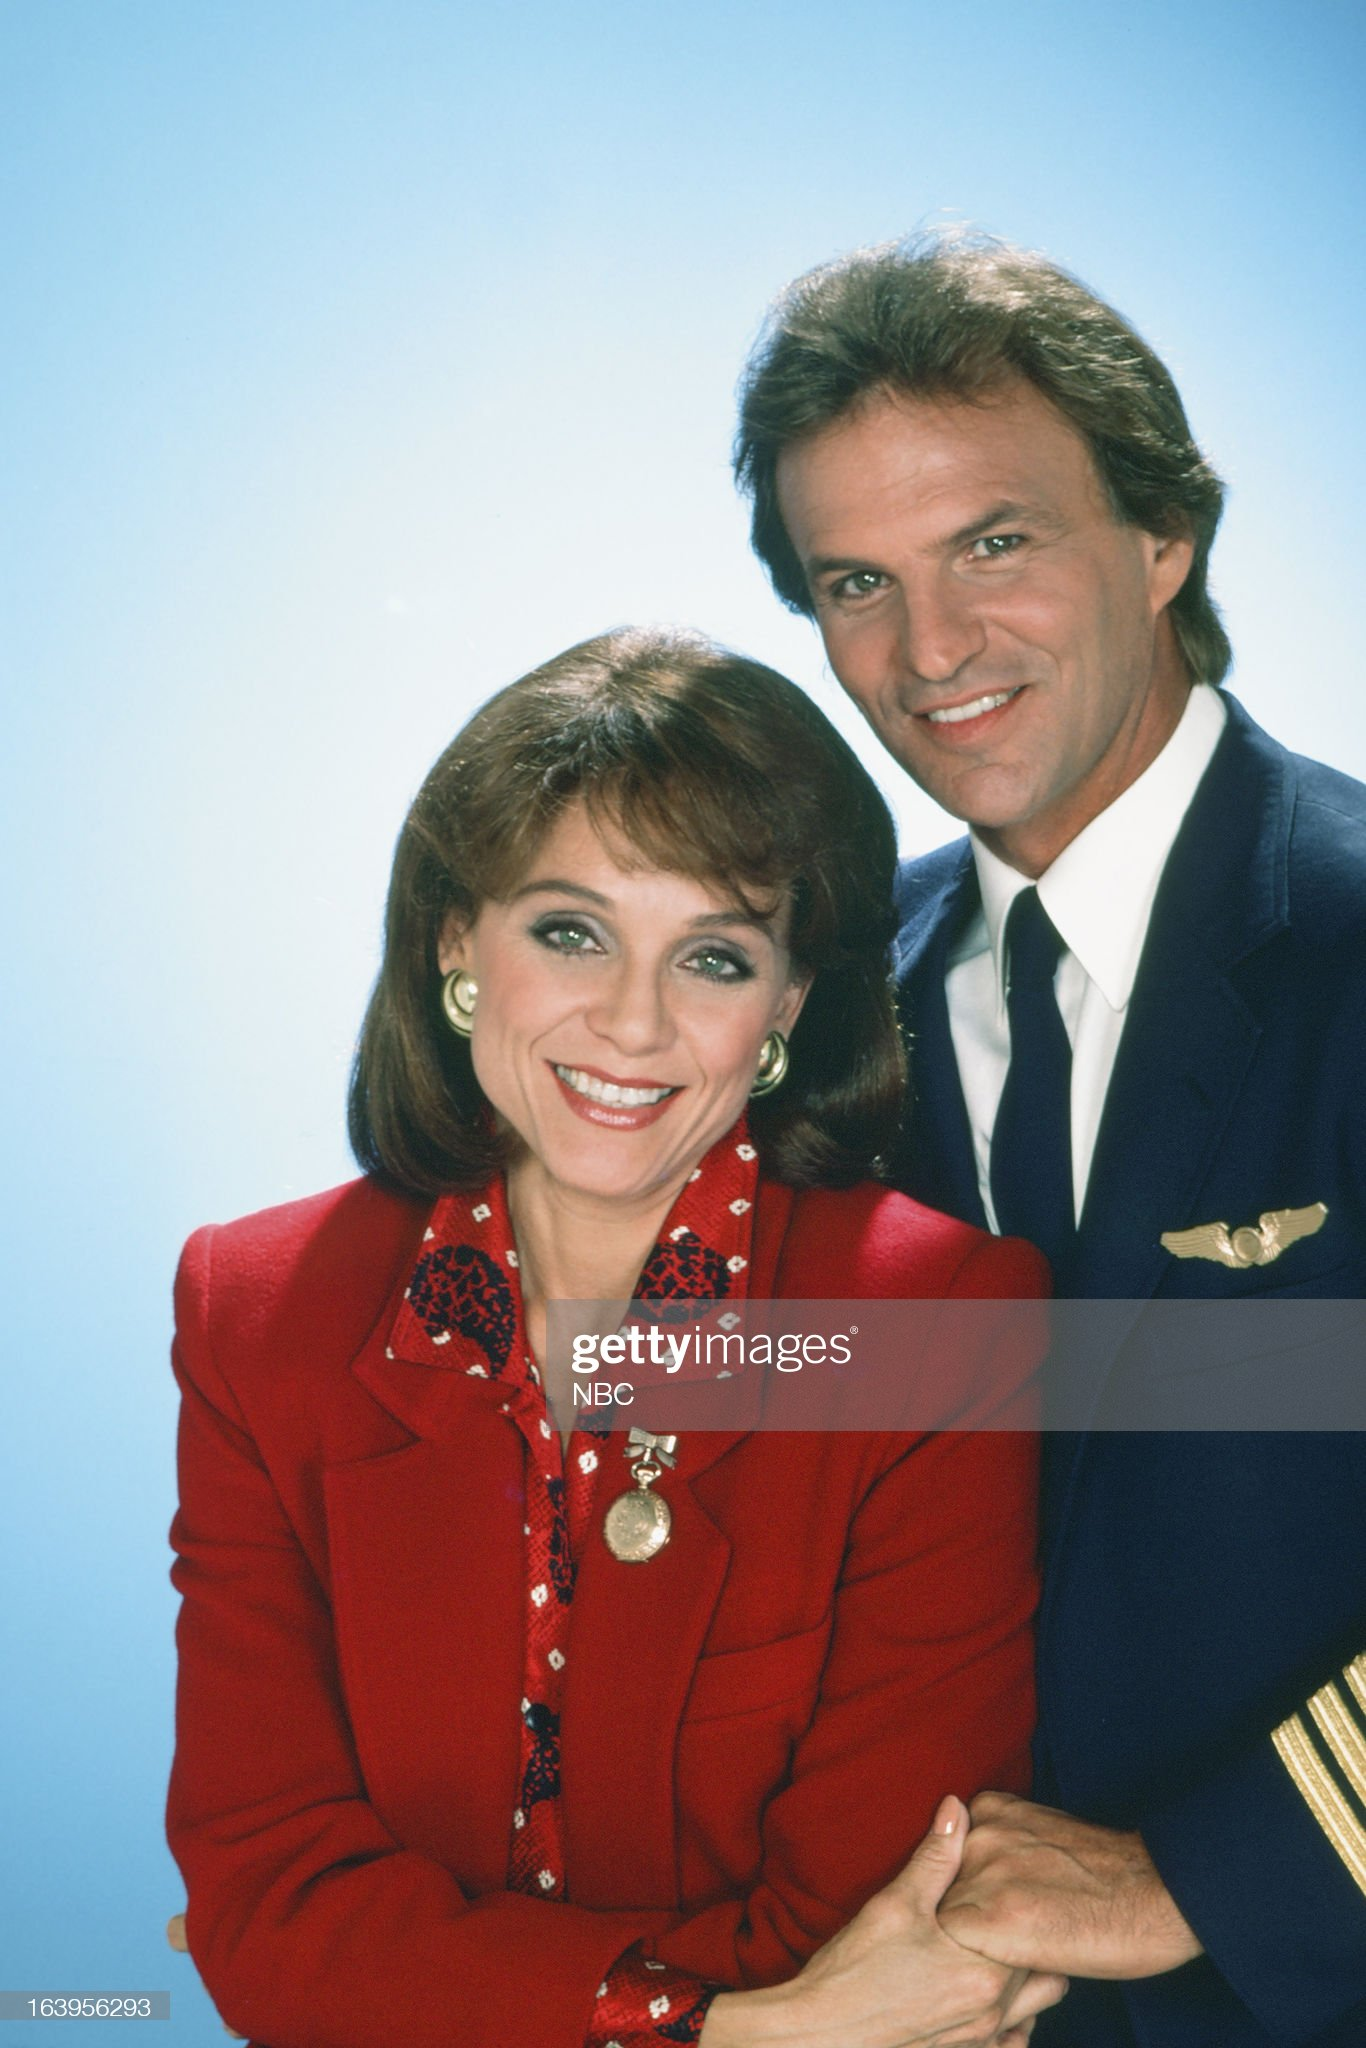 season-1-pictured-valerie-harper-as-valerie-hogan-josh-taylor-as-picture-id163956293